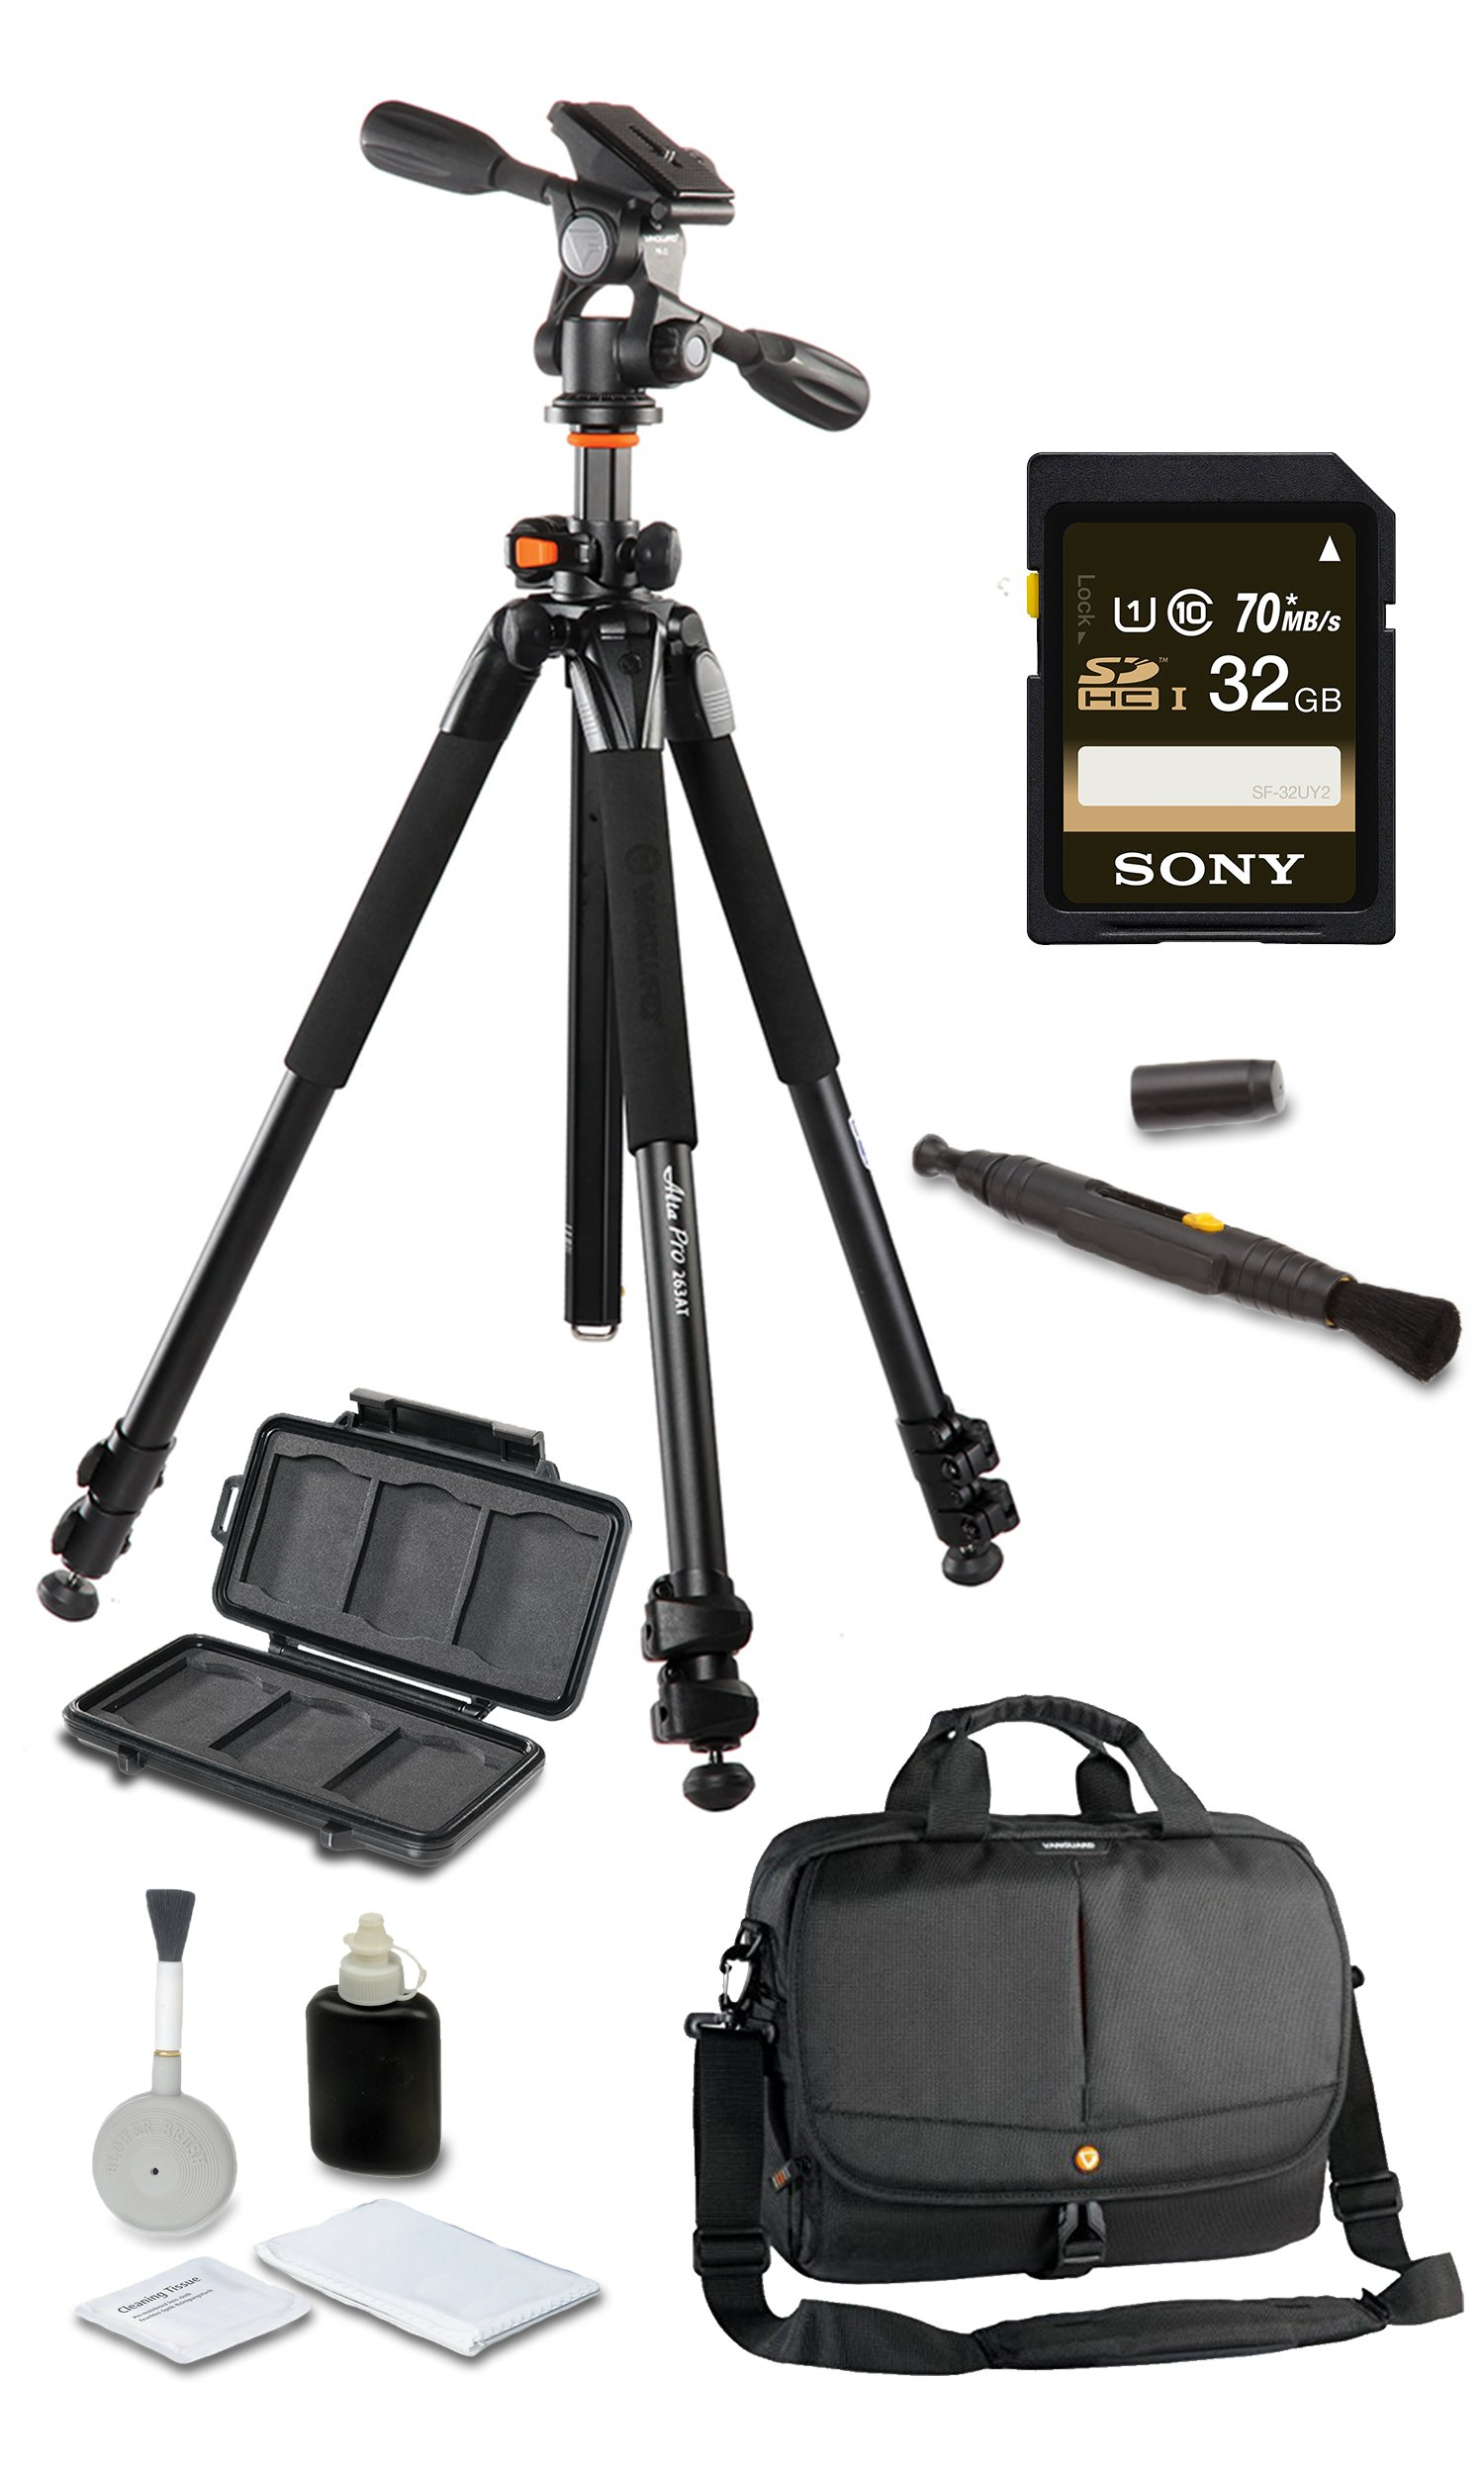 Vanguard Alta Pro 263AP Deluxe Bundle + Vanguard 2GO 33 Messenger Bag + SONY 32GB SD Card + Cleaning Kit 4pc + Lens Pen Cleaning Brush + Memory Card Wallet + Much More!